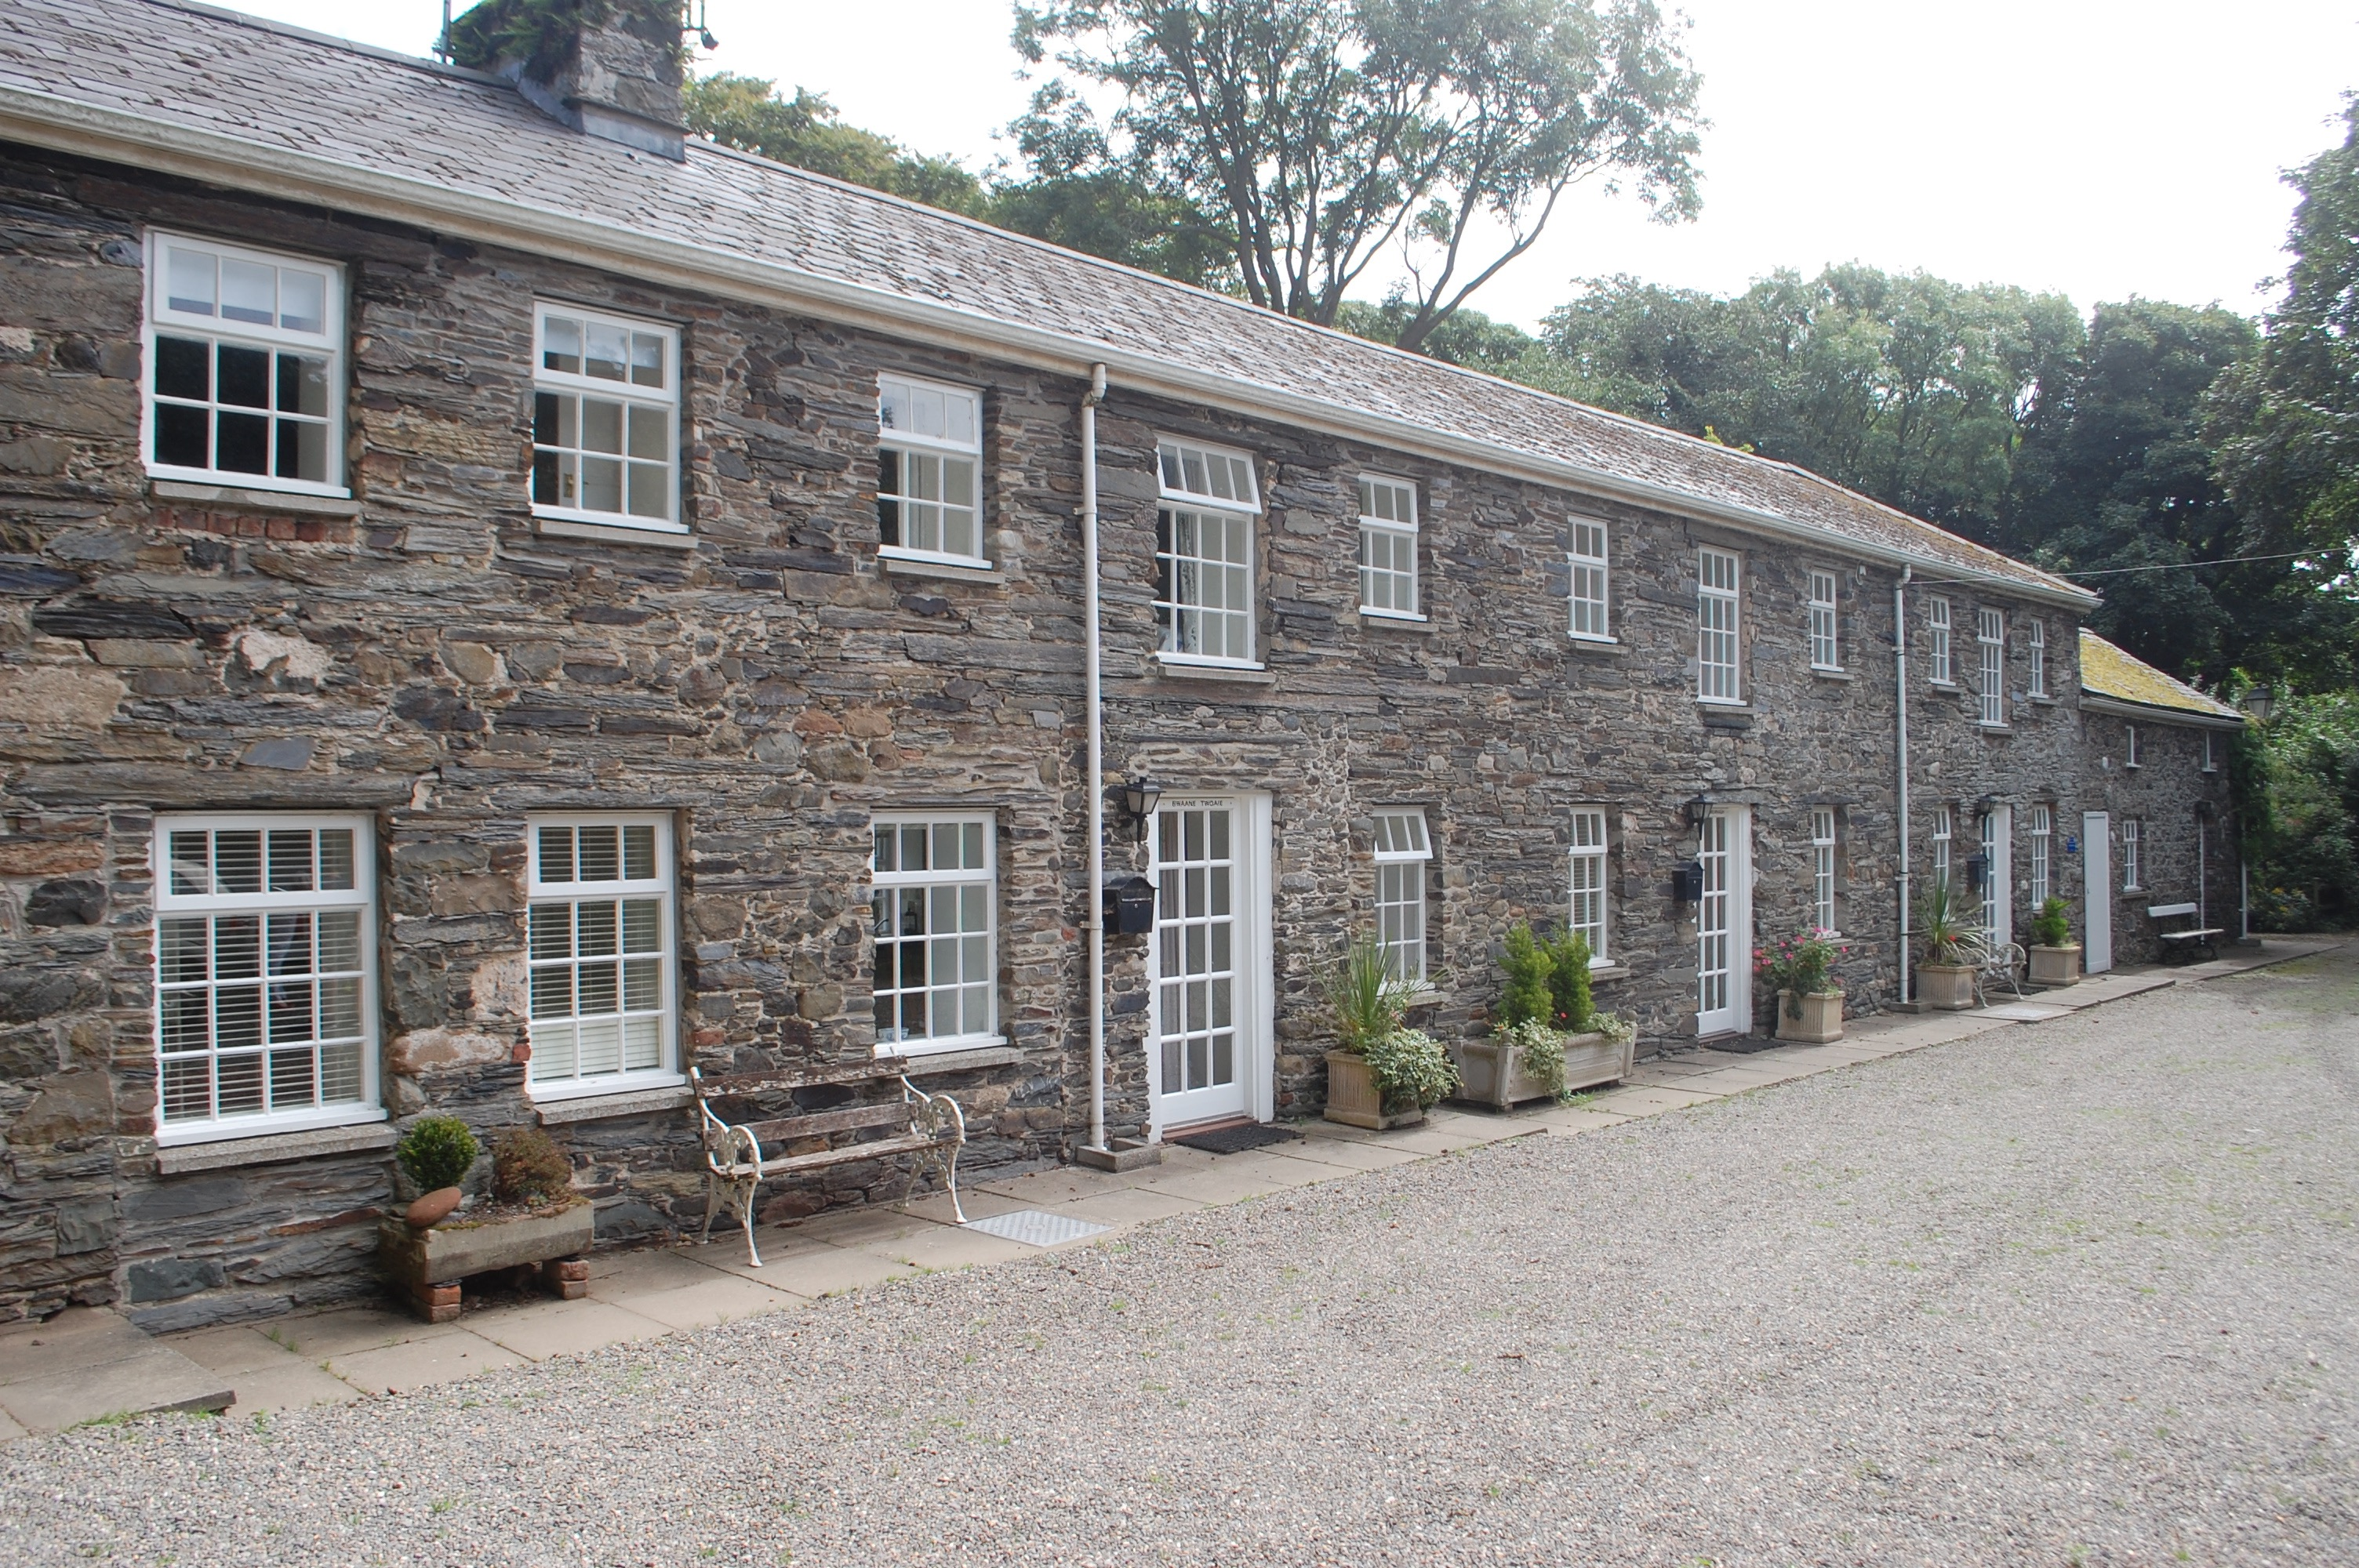 Orrisdale Country Cottages